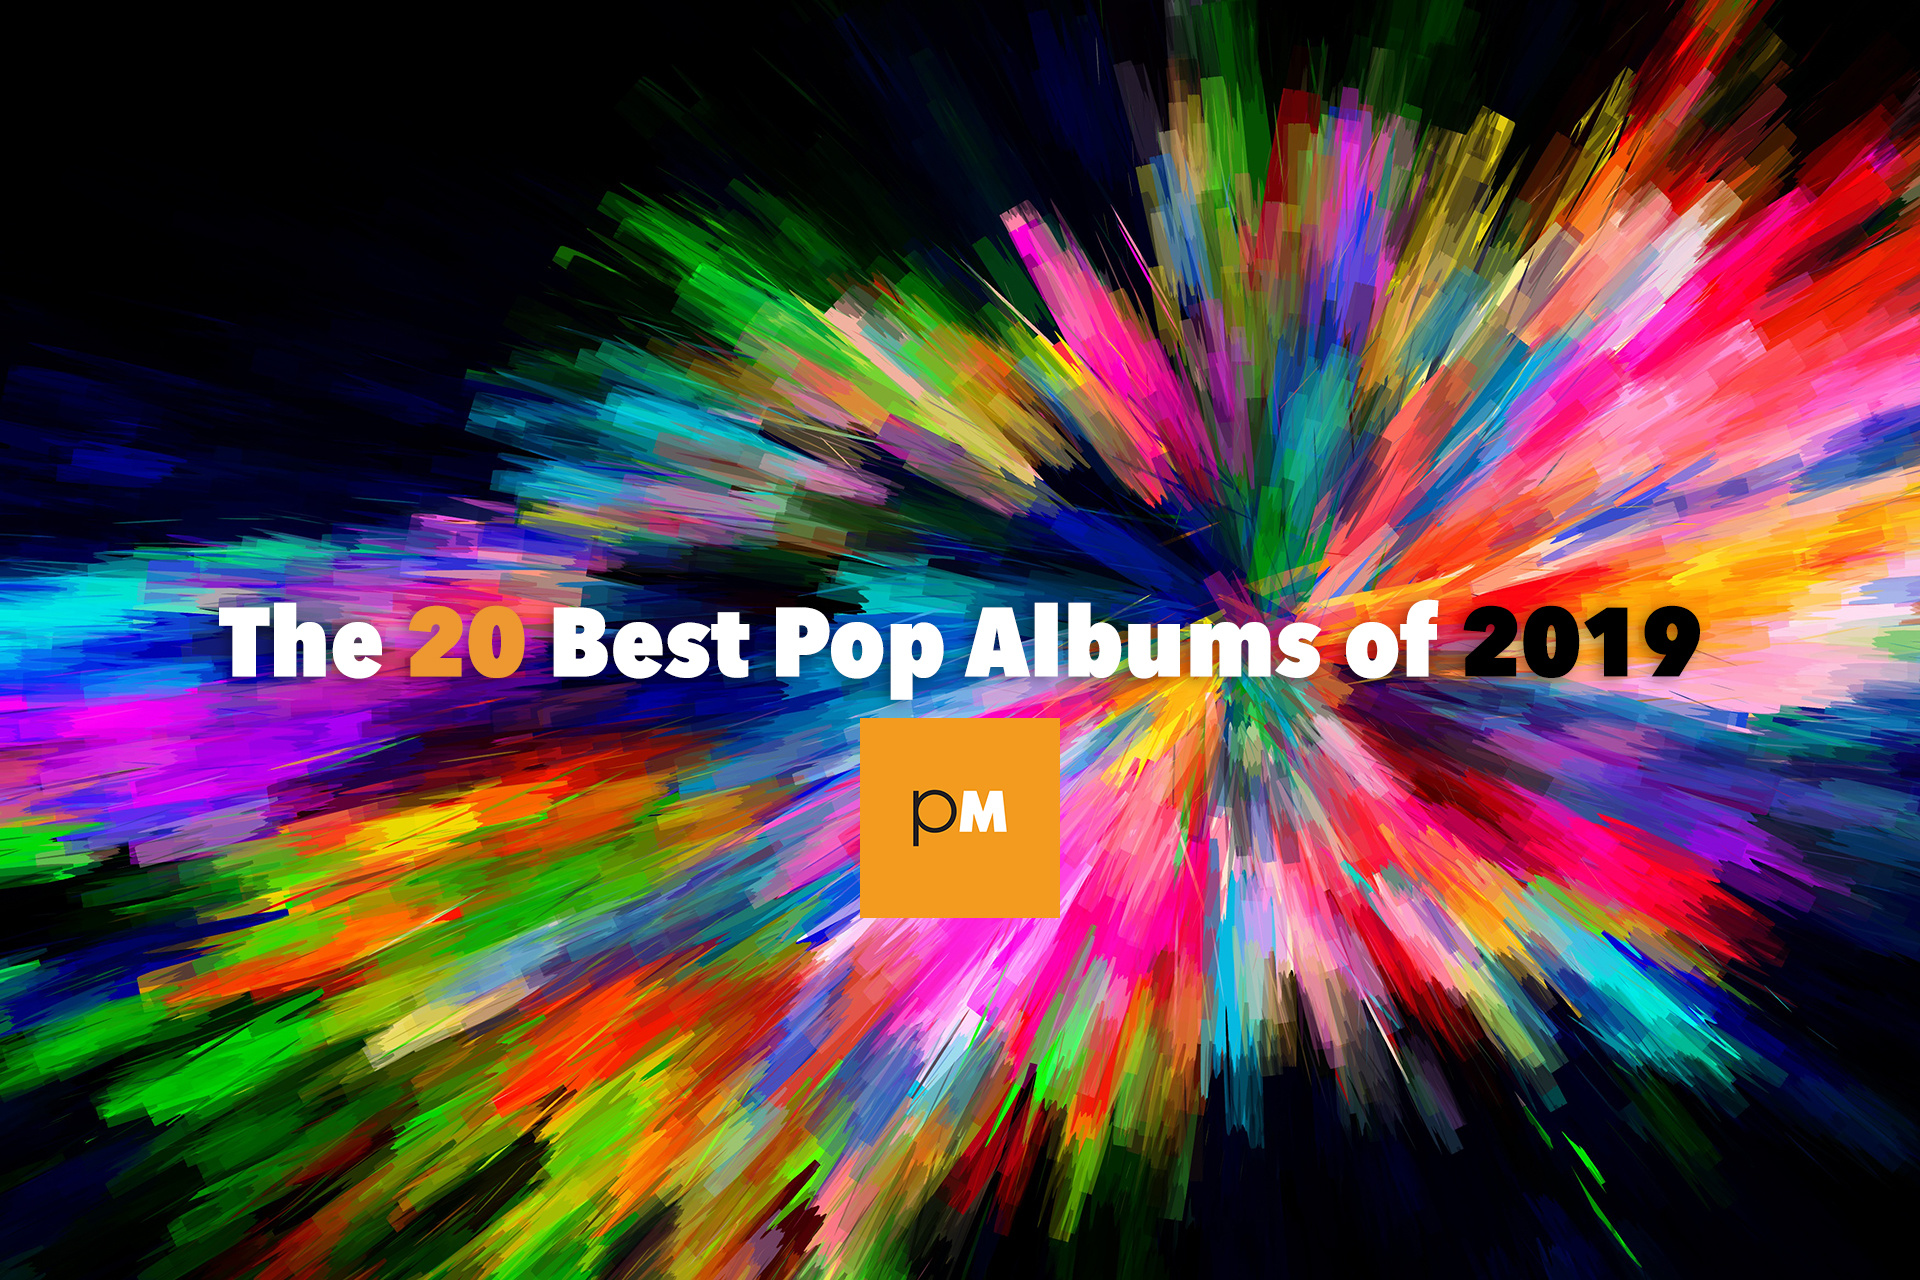 The 12 Best Pop Albums of 2019